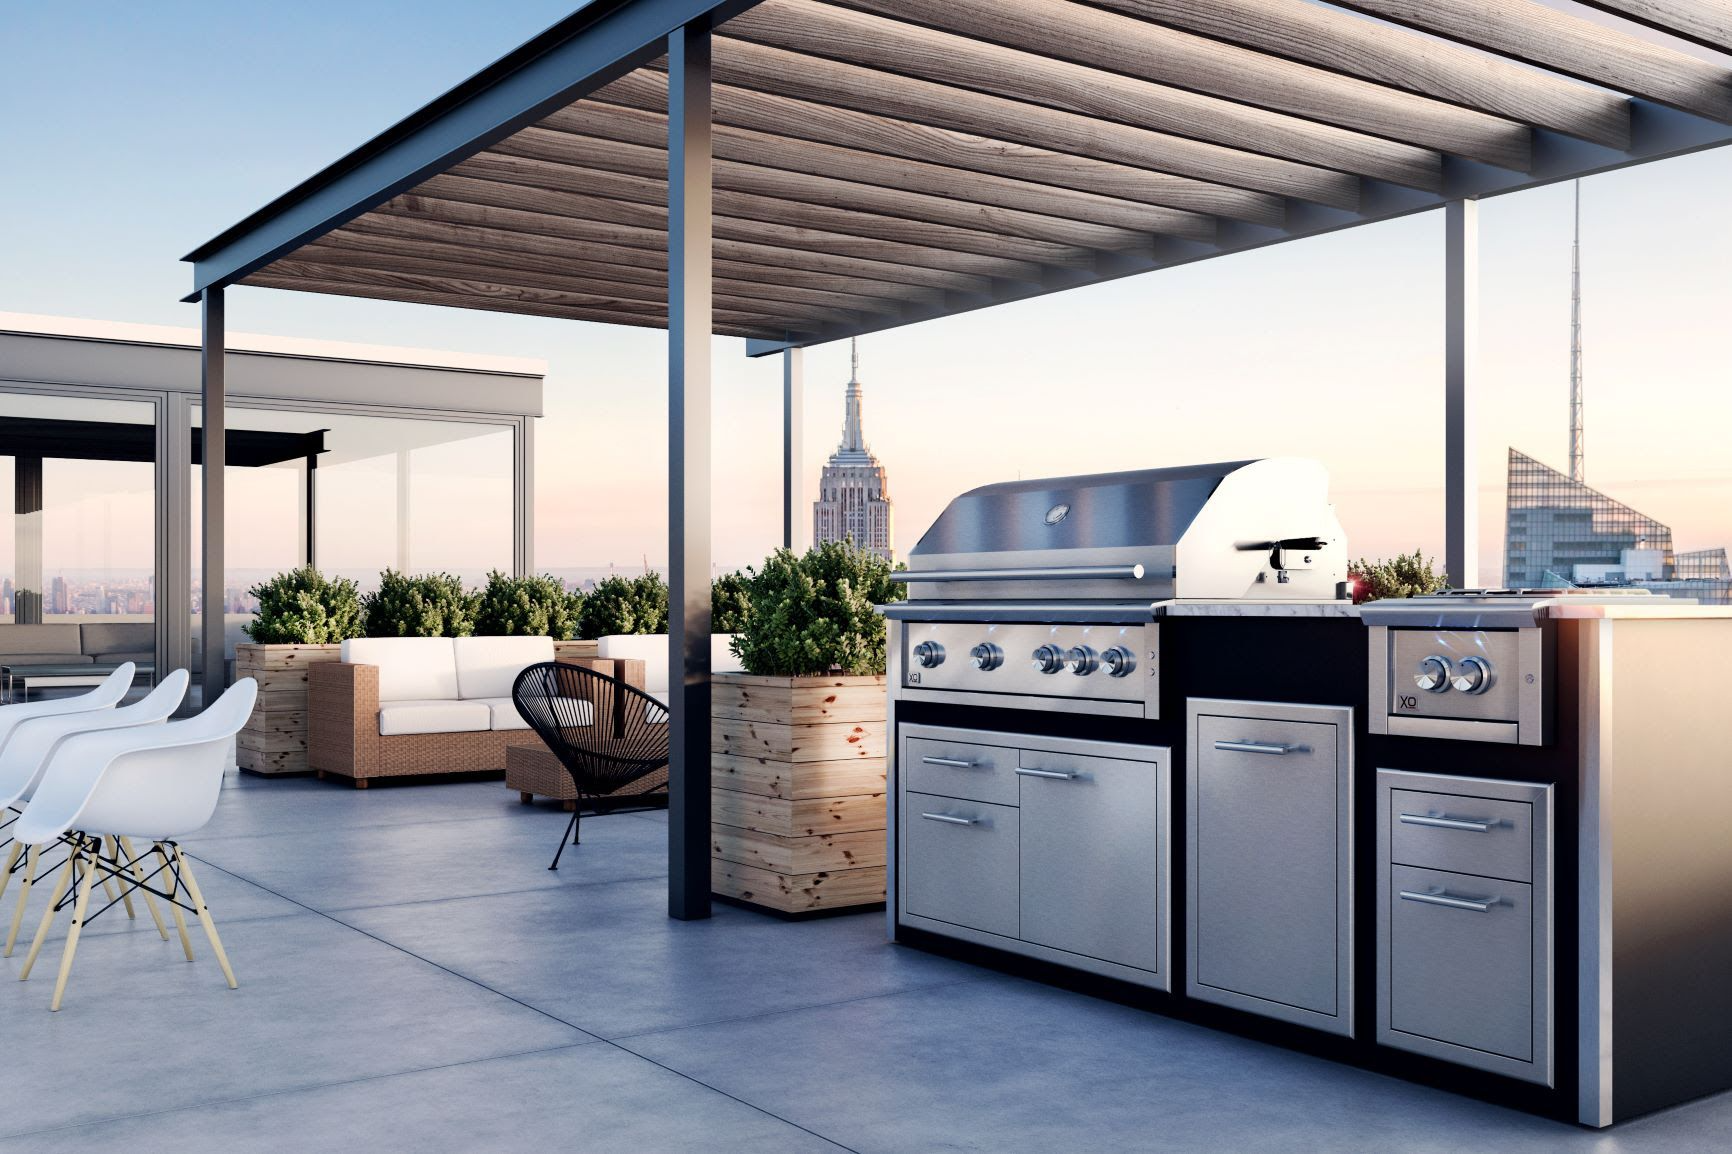 XO - Dream Bigger Promo: Free Access Doors, or 50% off Combo Drawer/Doors or Cart with purchase of Grill